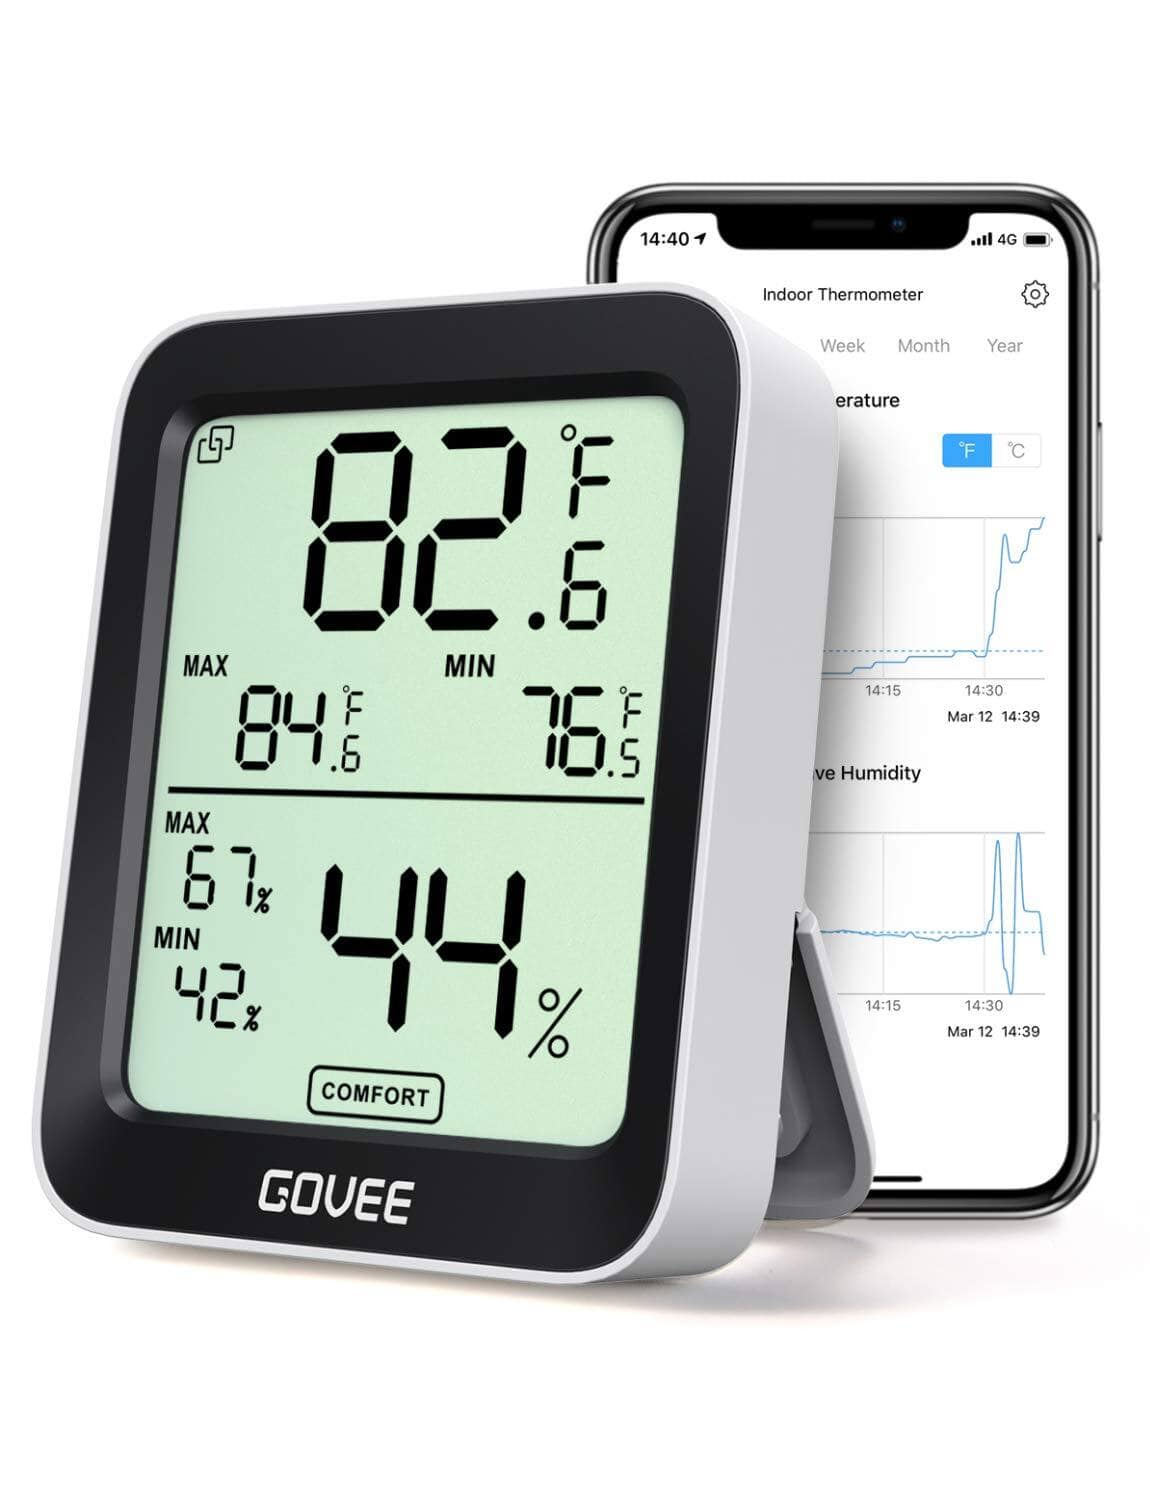 Govee Smart Temperature Humidity Monitors w/ Swiss-made Sensor and App Tracking - $8.99 + FS w/ Prime or Orders $25+